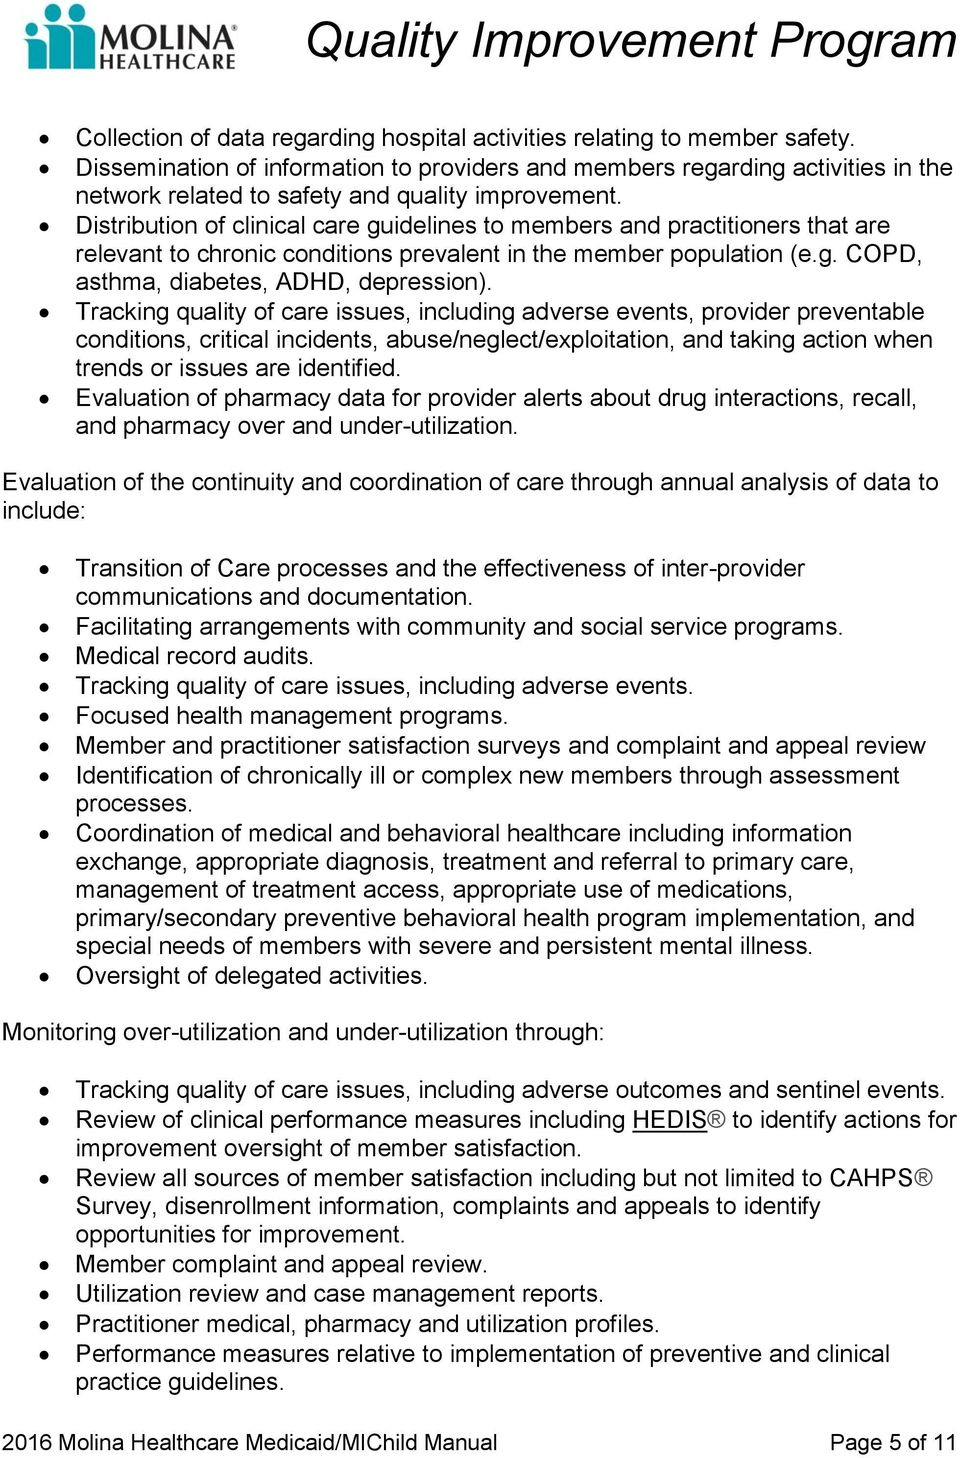 Distribution of clinical care guidelines to members and practitioners that are relevant to chronic conditions prevalent in the member population (e.g. COPD, asthma, diabetes, ADHD, depression).